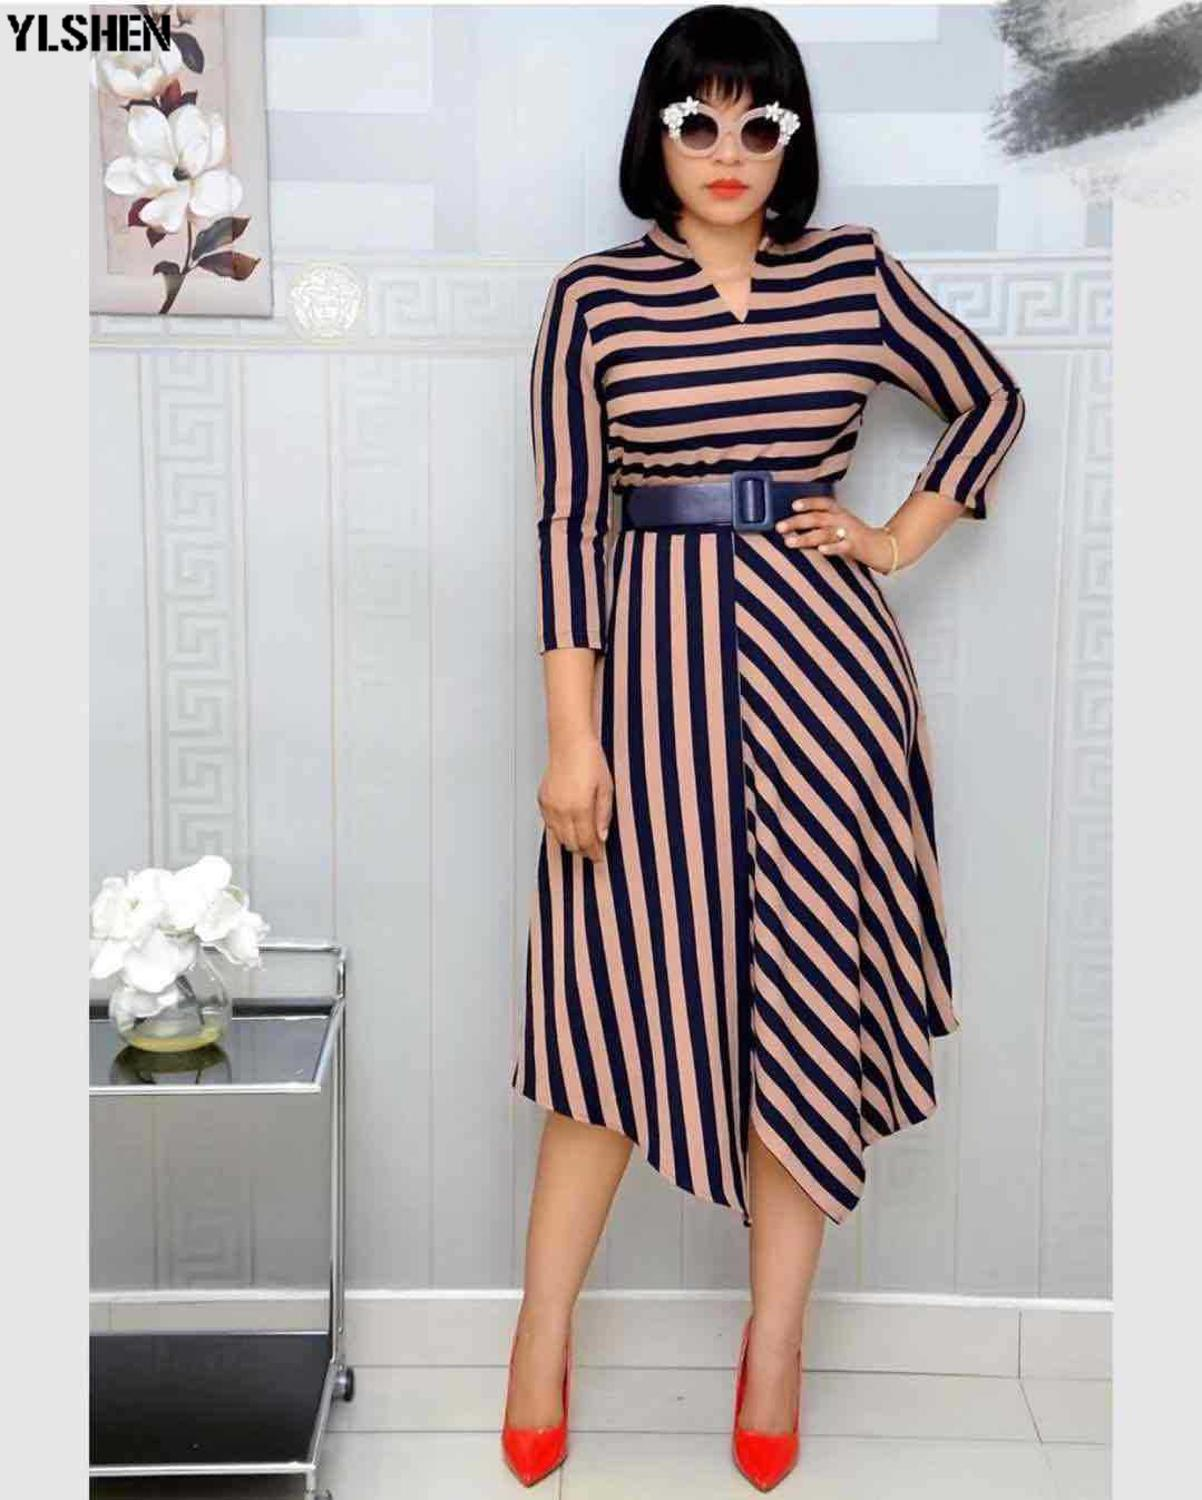 African Dresses For Women Stripe Africa Clothing Ankara Long Dress High Quality Length Fashion African Dress For Lady With Belt